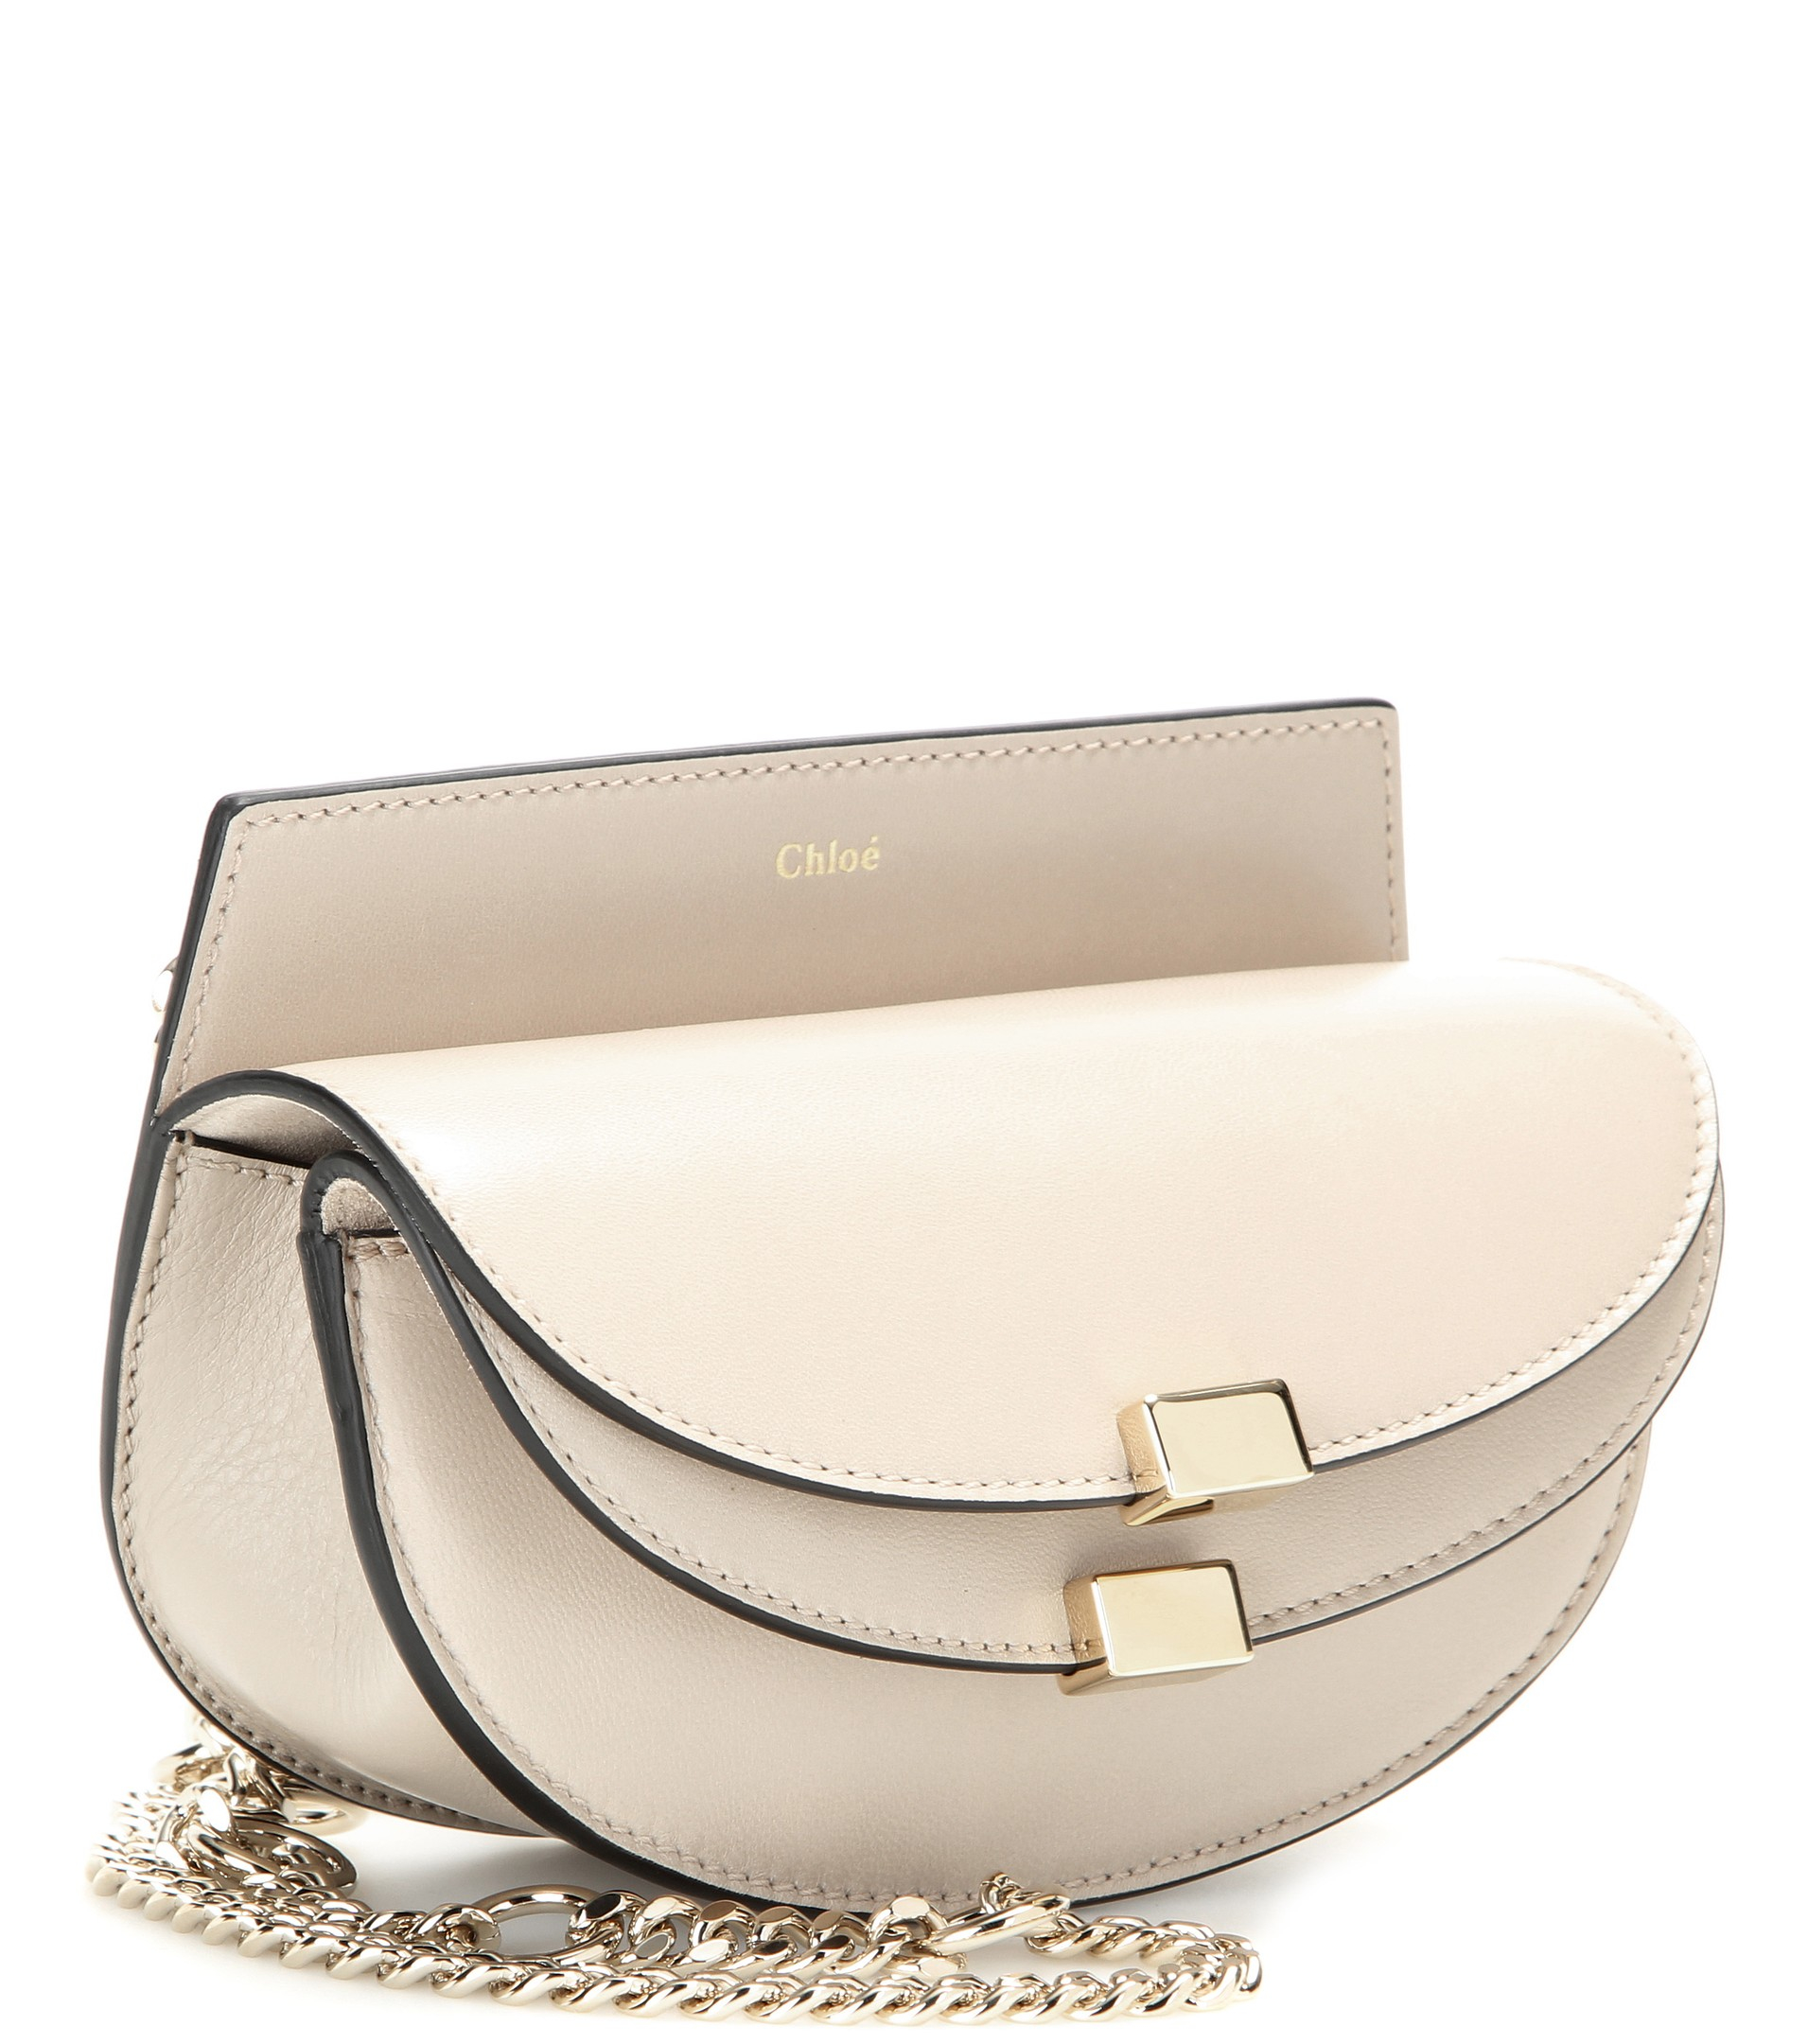 Chlo¨¦ Georgia Nano Leather Shoulder Bag in Beige | Lyst